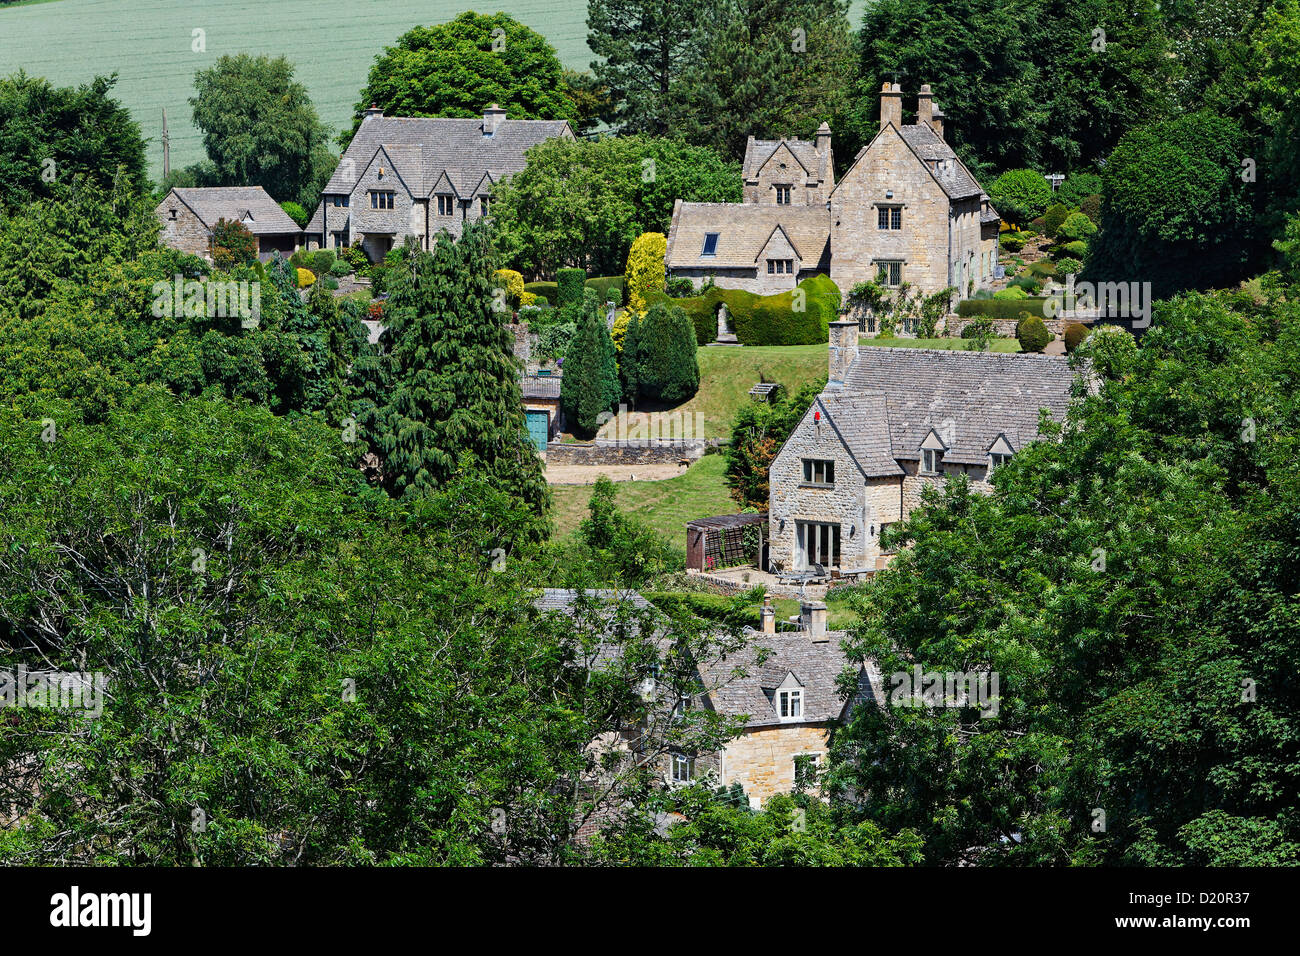 View of the village of Snowshill, Gloucestershire, Cotswolds, England, Great Britain, Europe - Stock Image